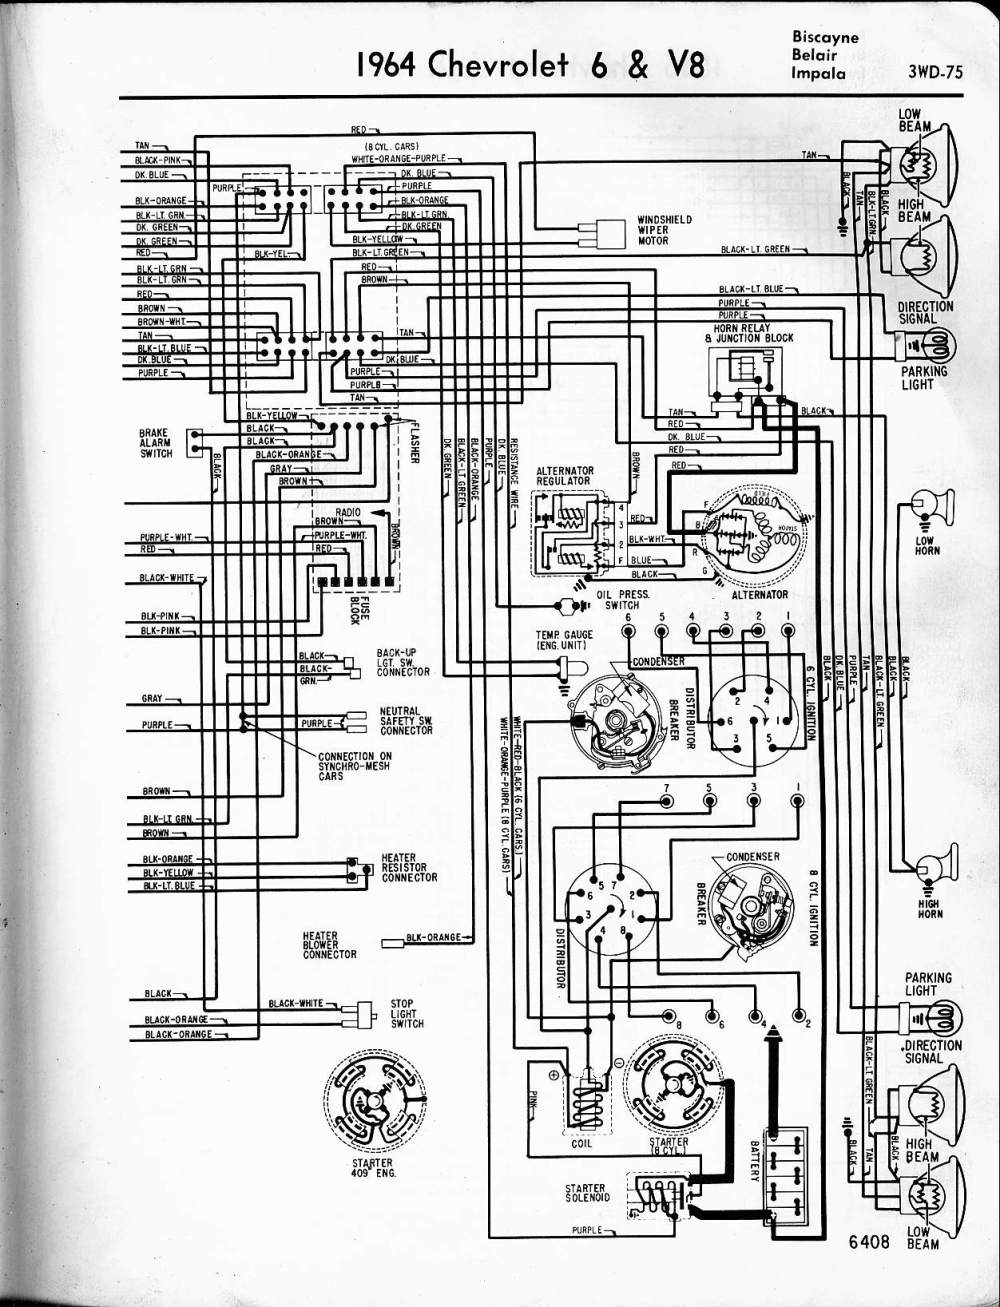 medium resolution of 64 cj5 wiring diagram wiring diagram show 64 cj5 wiring diagram